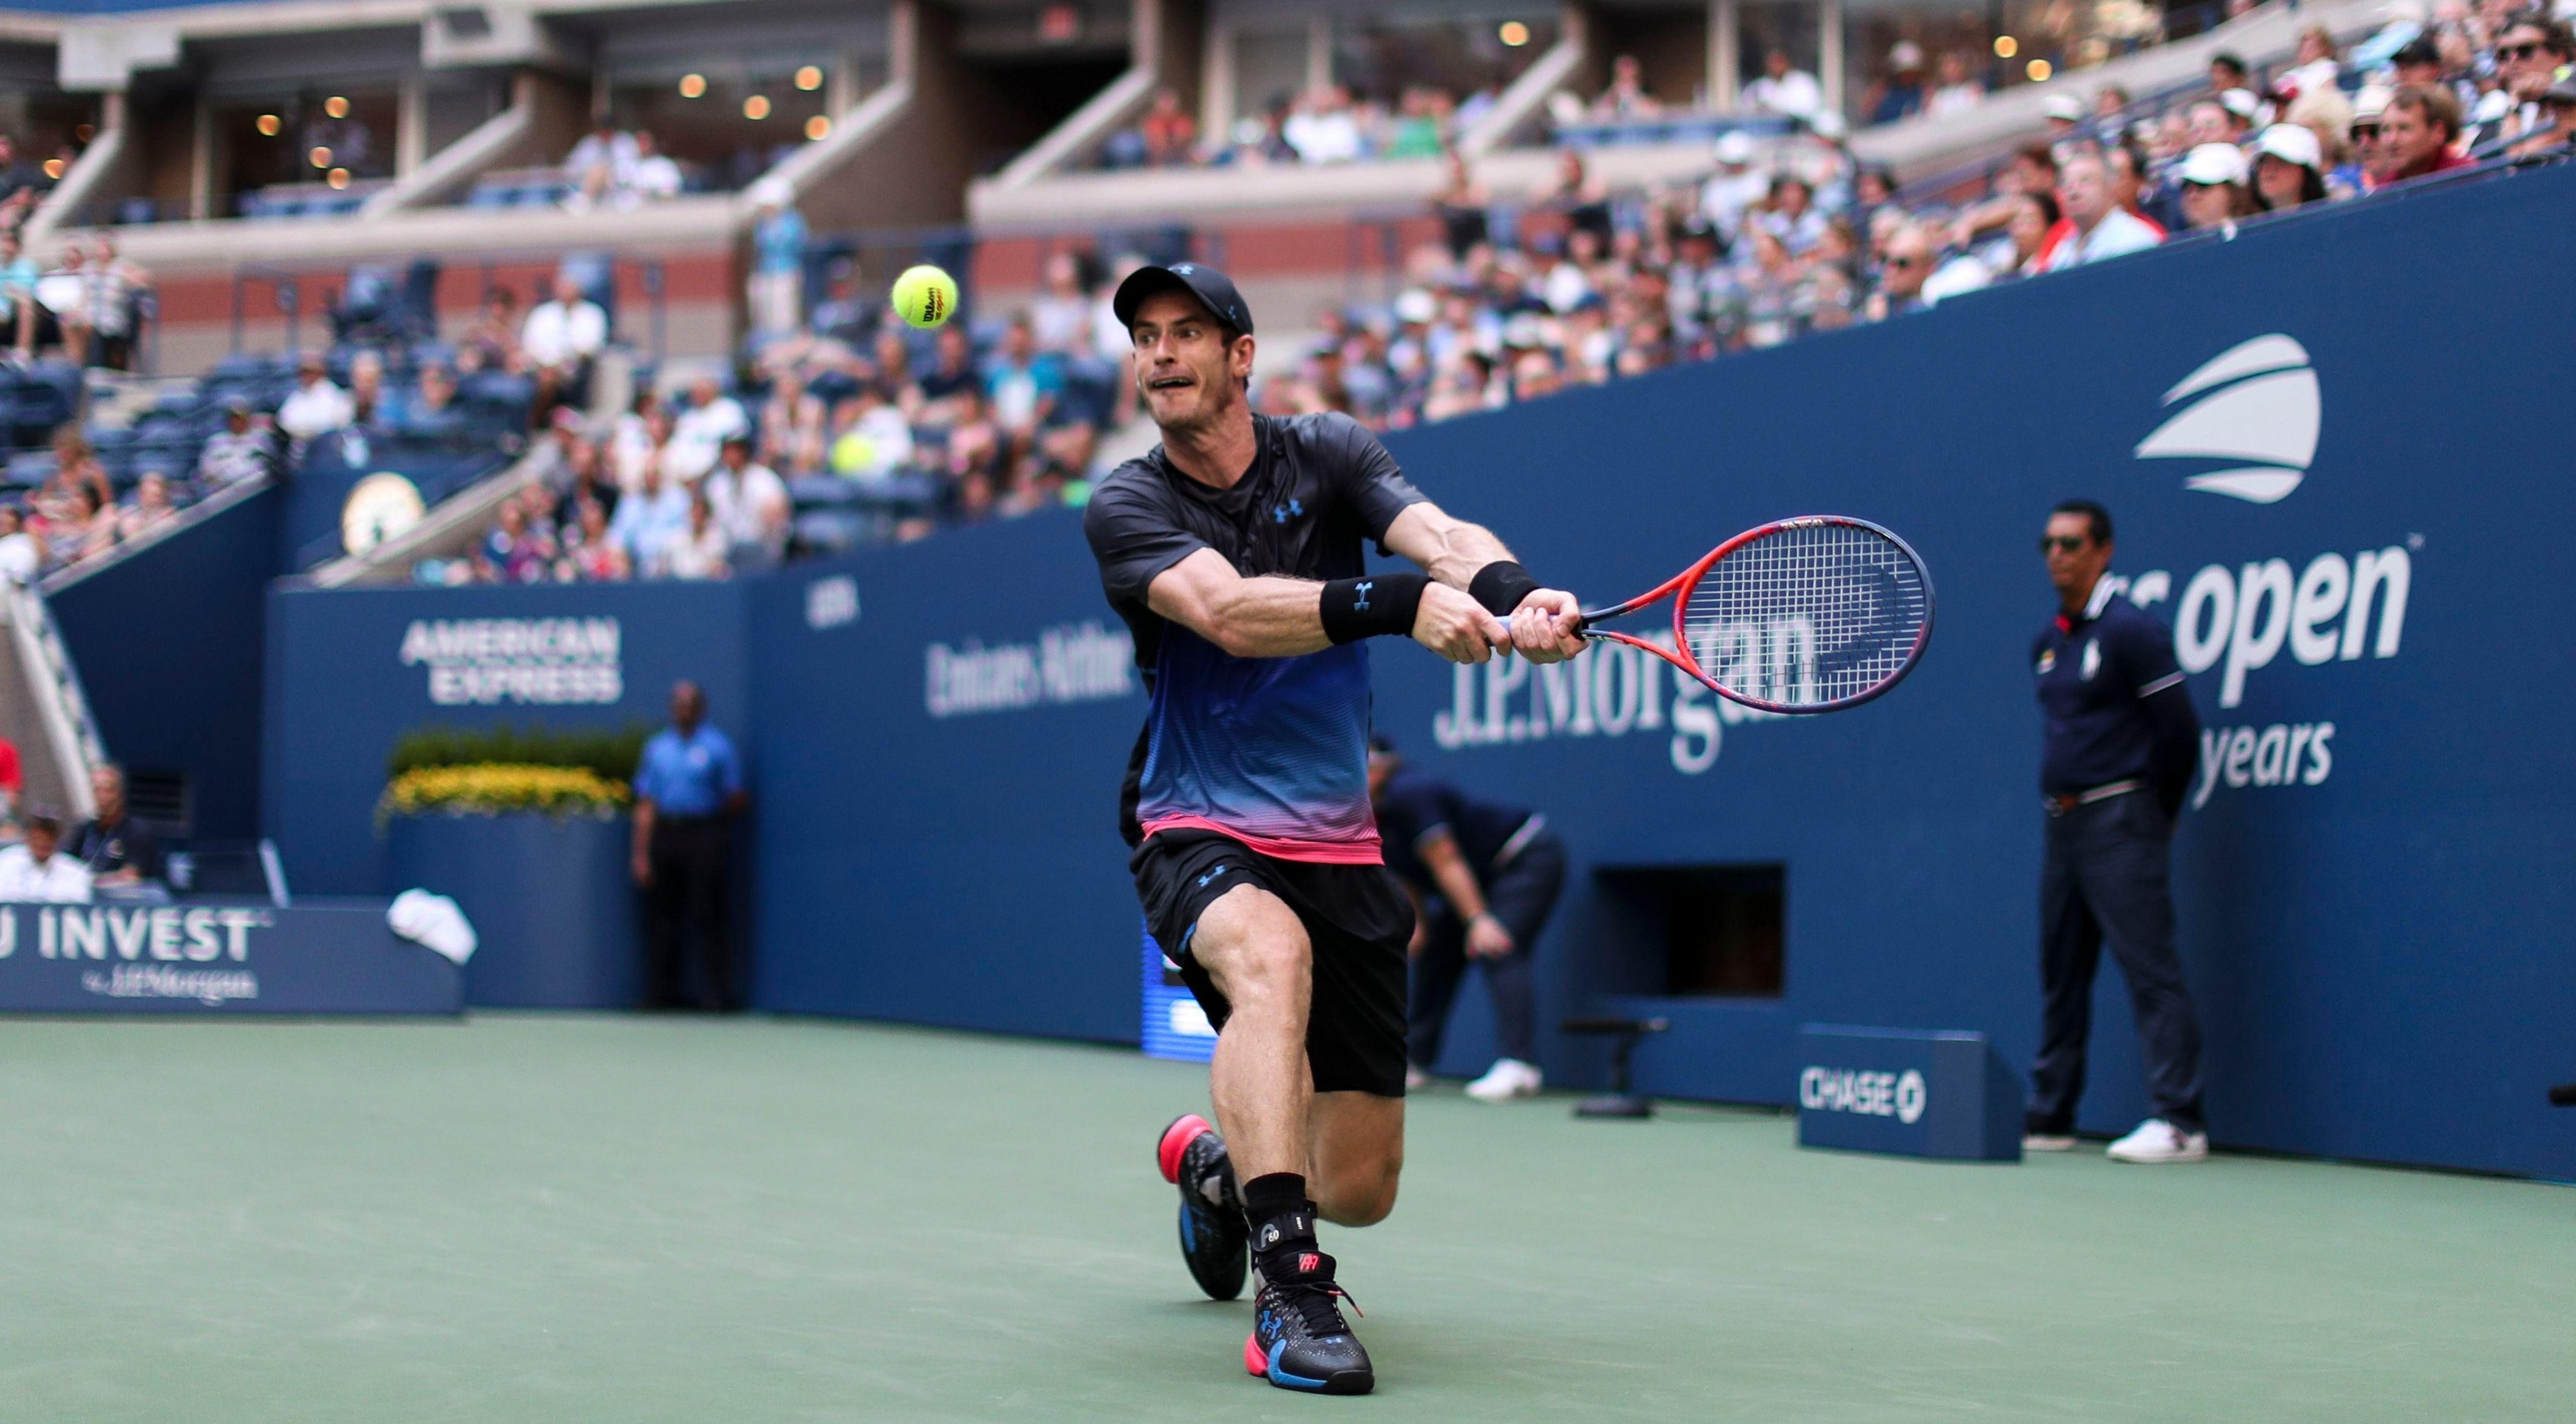 Andy Murray was playing in his first grand slam for 13 months